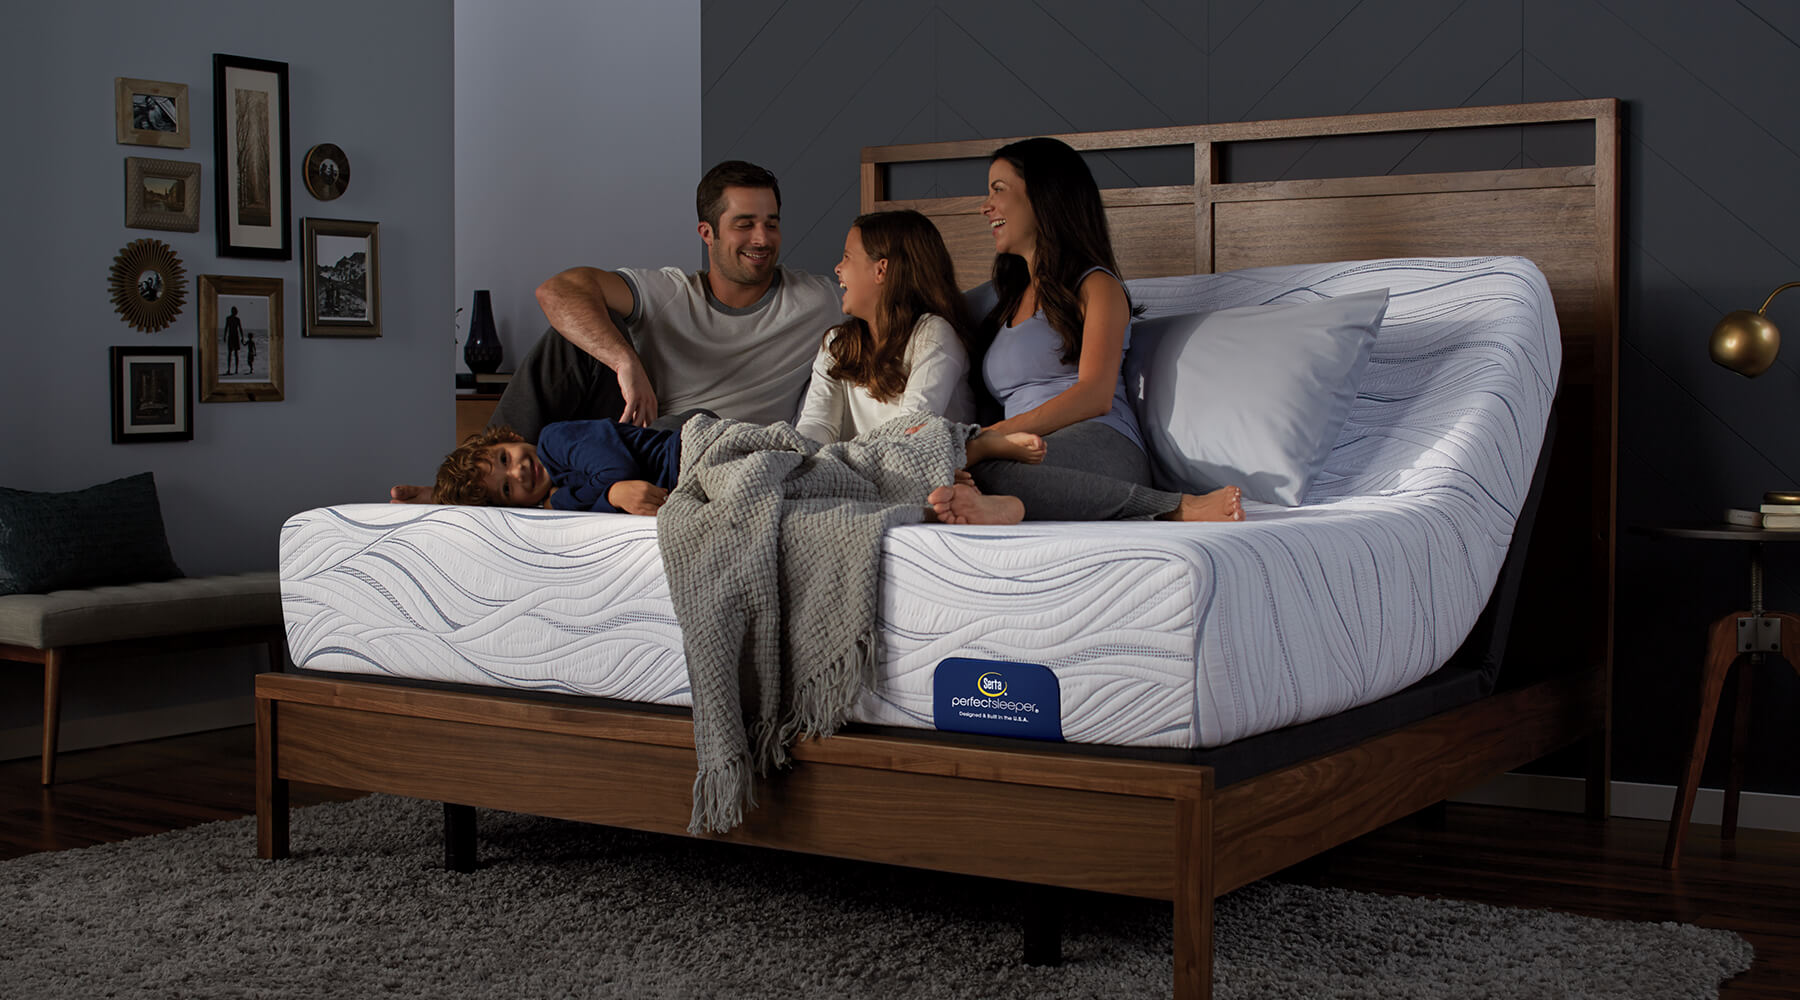 The Sealy Posturepedic Series Is Available For Multiple Price Ranges Budget Users Can Already Get An Affordable Mattress With About Six Hundred Dollars